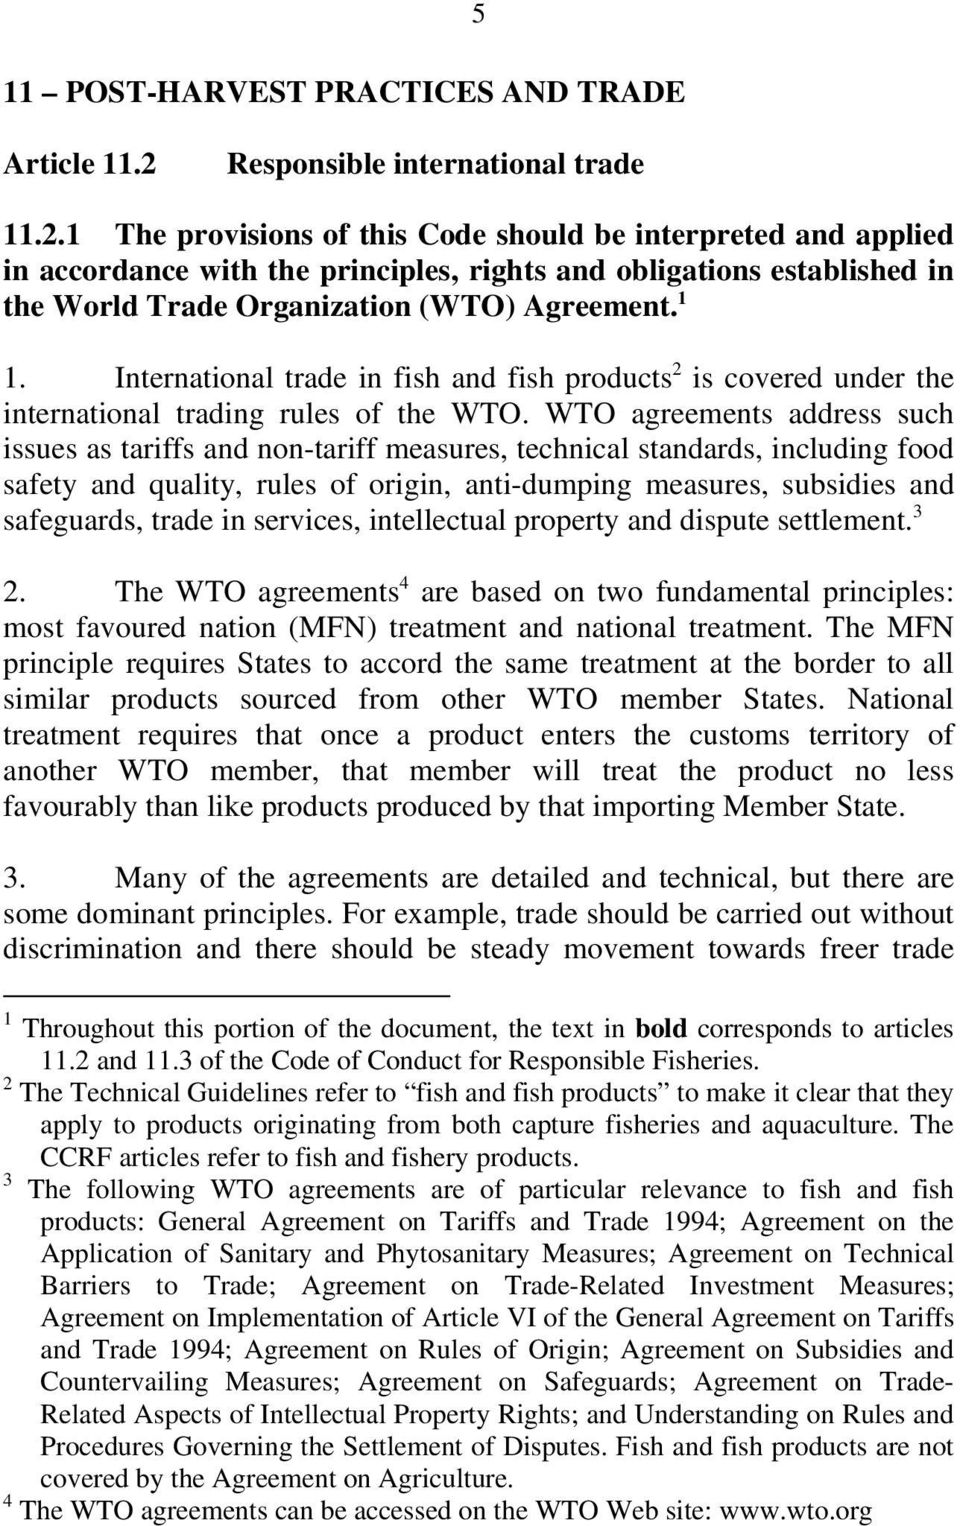 1 The provisions of this Code should be interpreted and applied in accordance with the principles, rights and obligations established in the World Trade Organization (WTO) Agreement. 1 1.